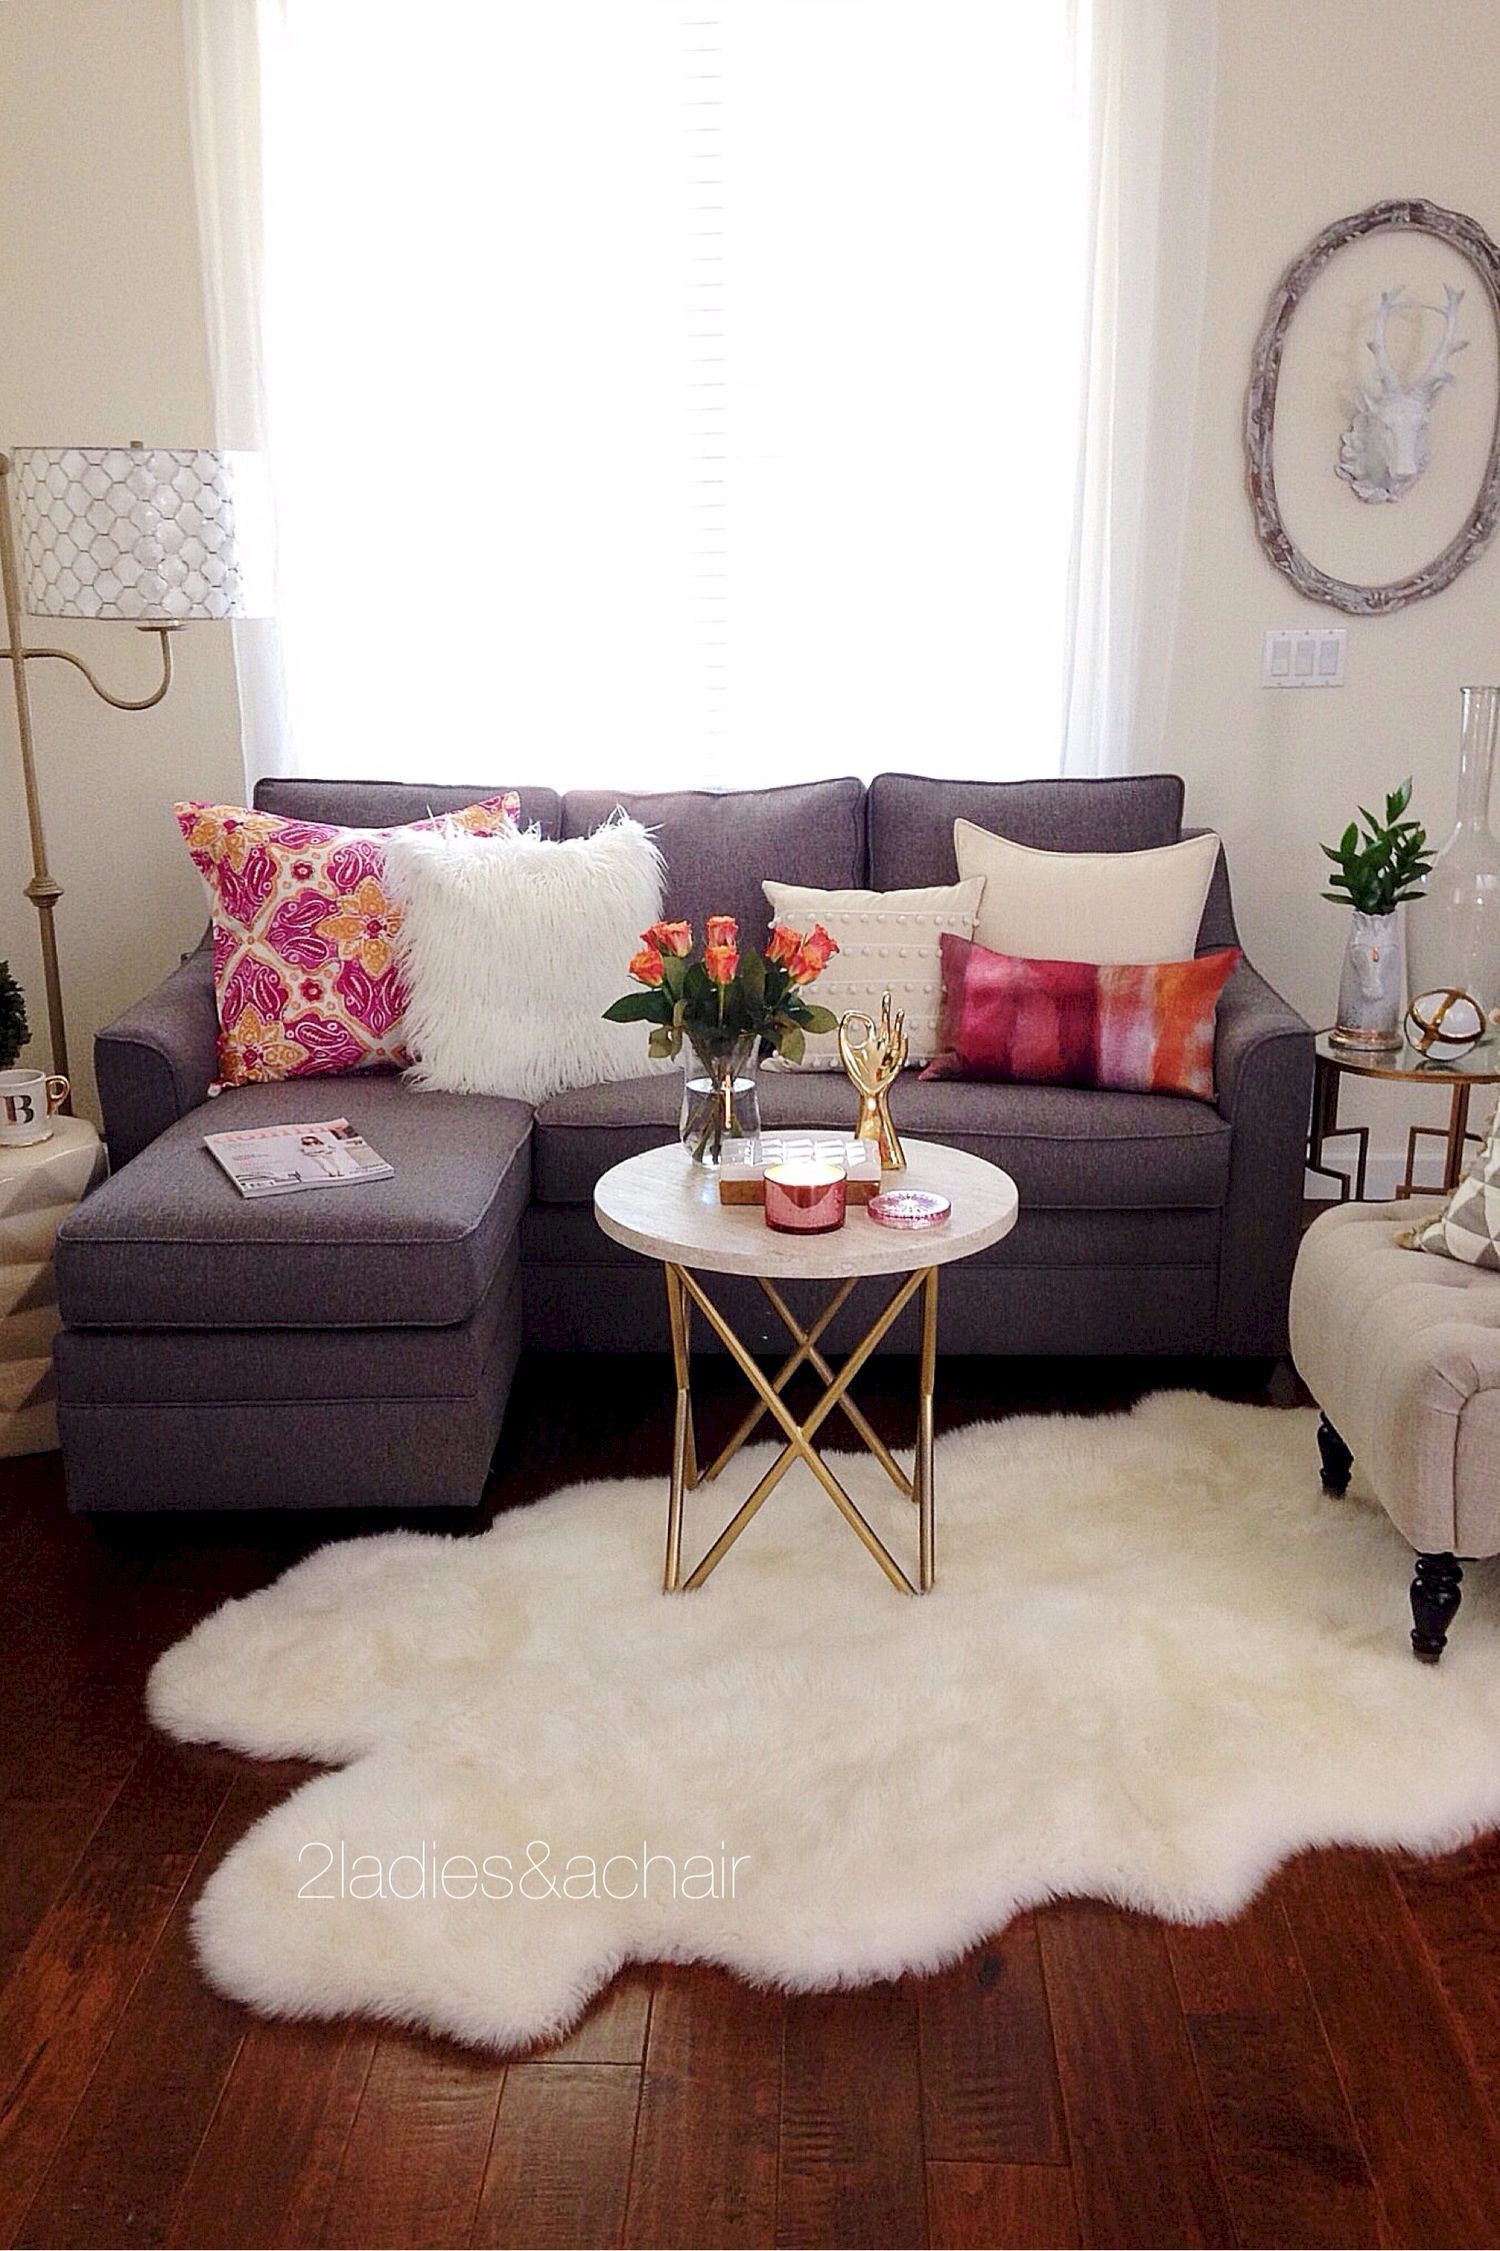 The Best Diy Apartment Small Living Room Ideas A Bud 159